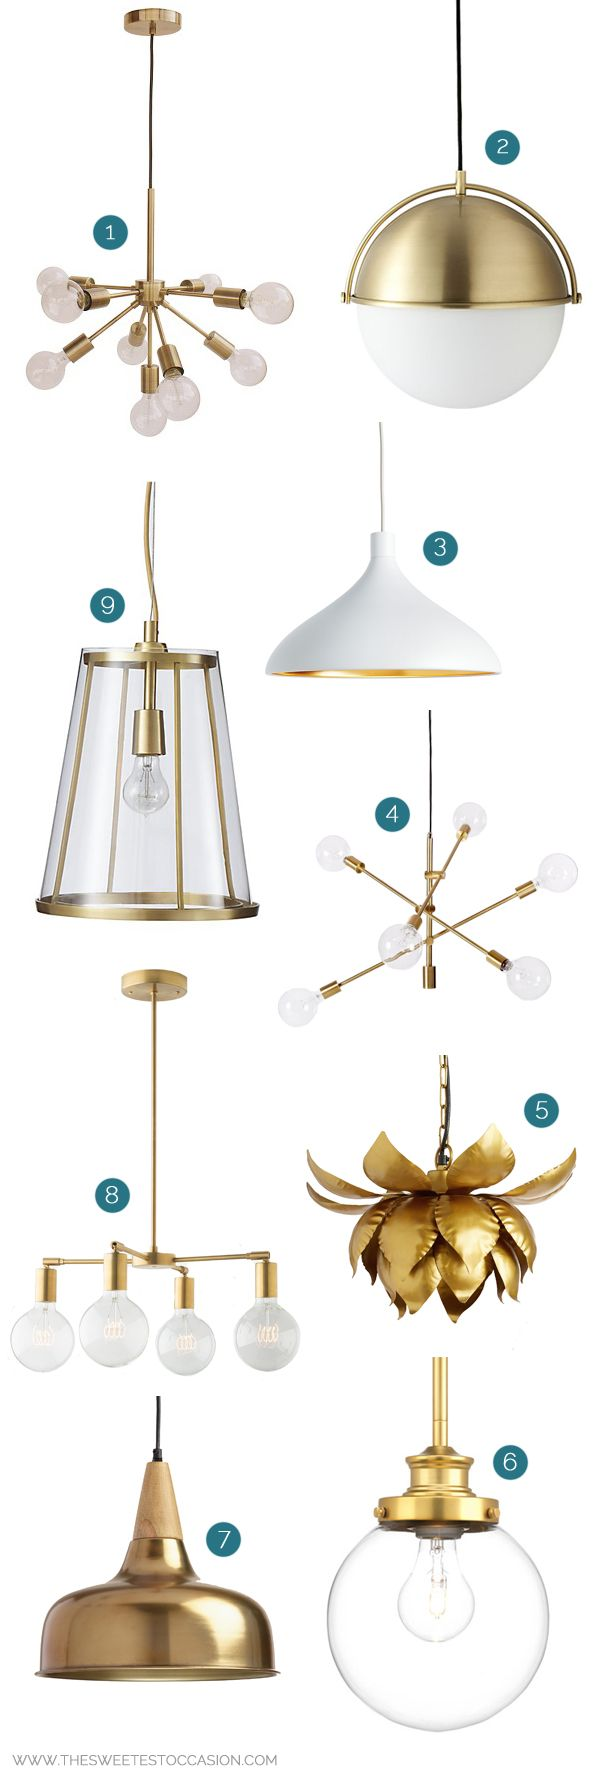 brass lighting fixtures. Brass Lighting Fixtures O